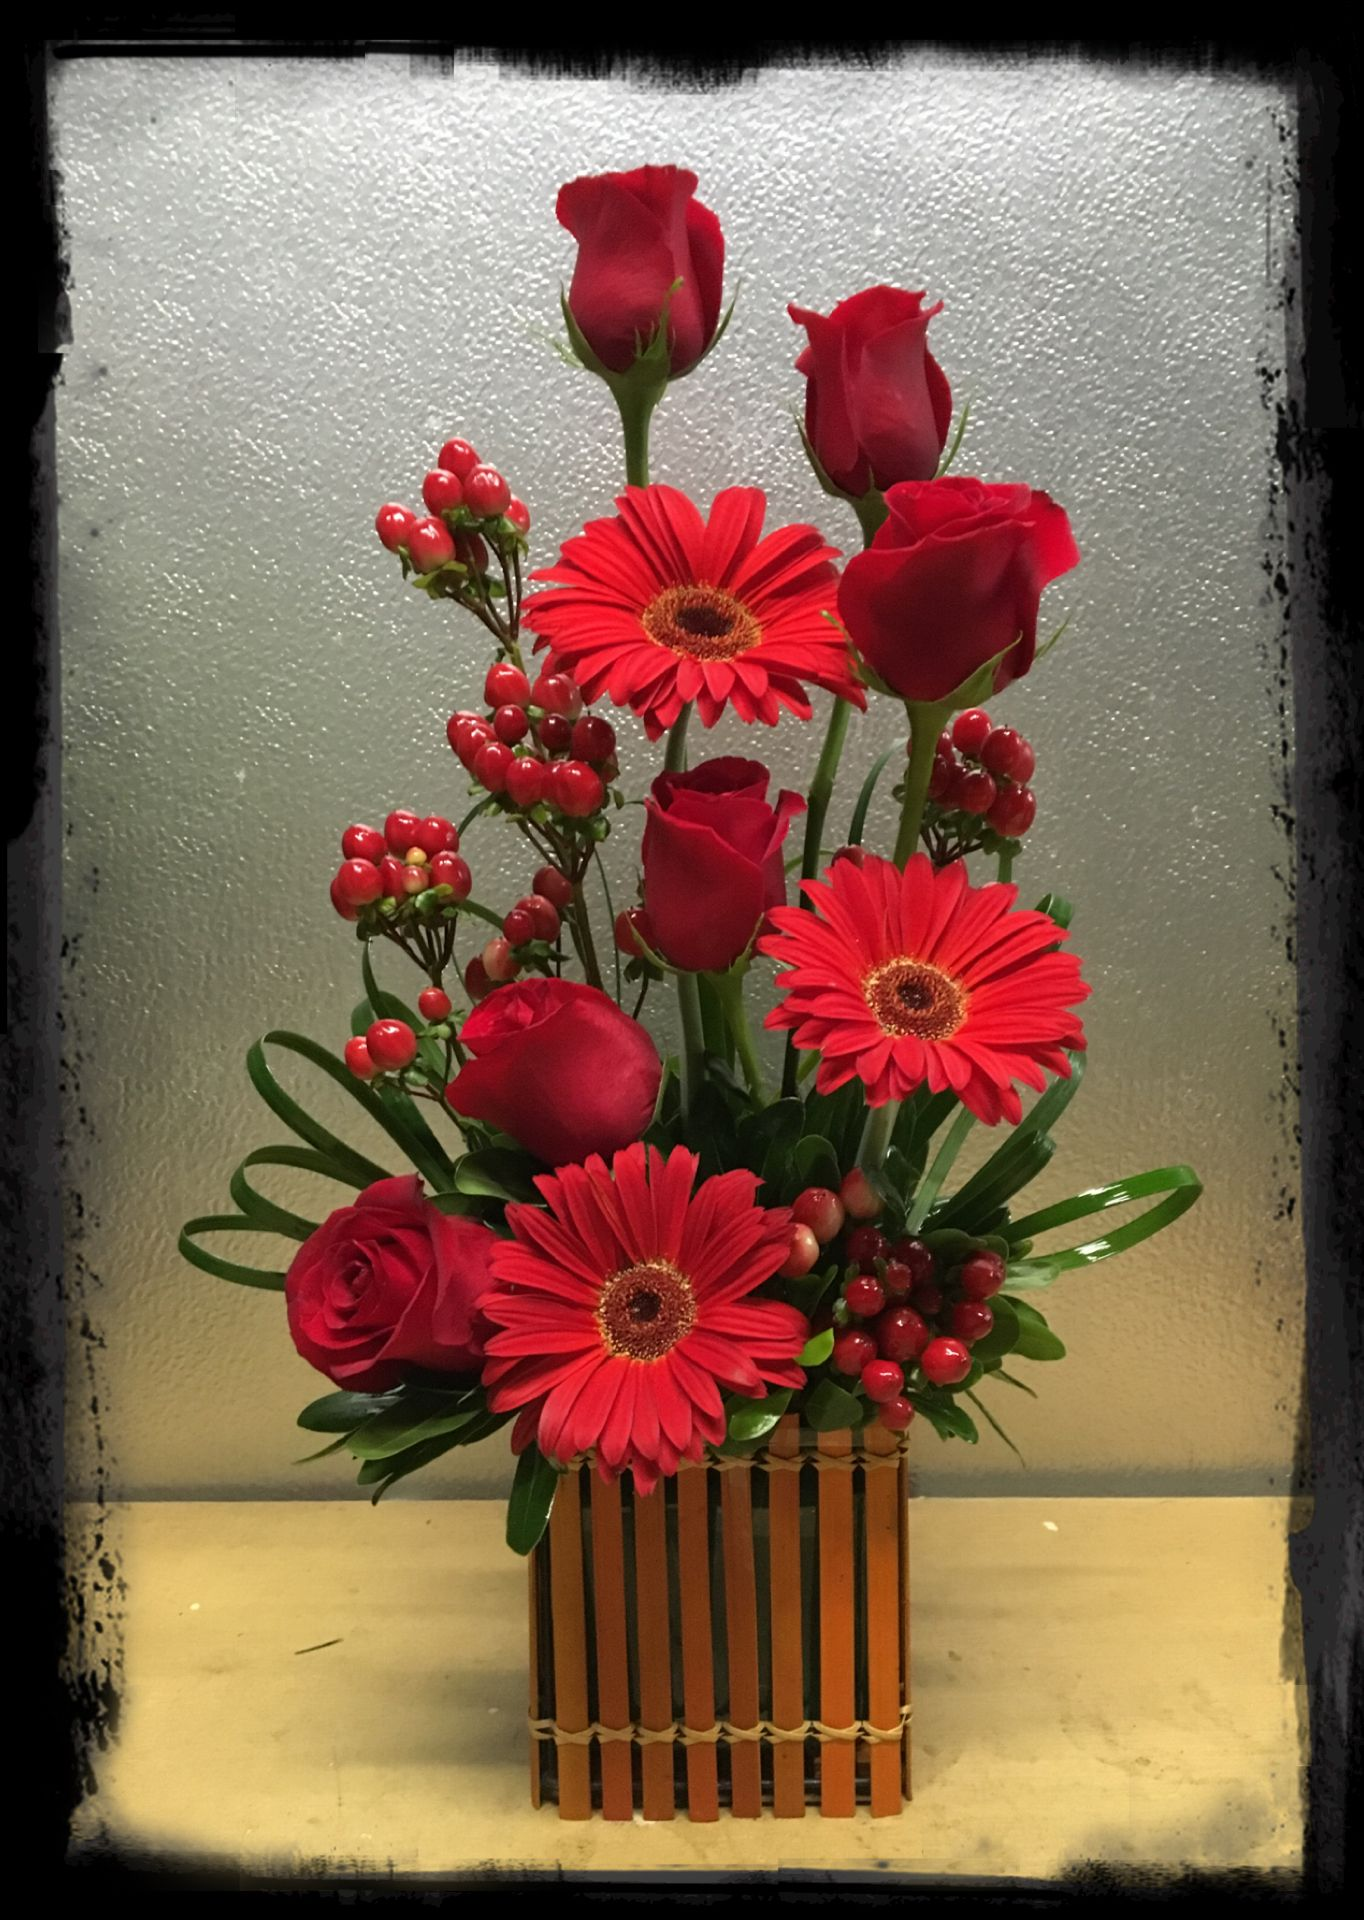 Red roses, red gerbera daisies, and hypericum floral